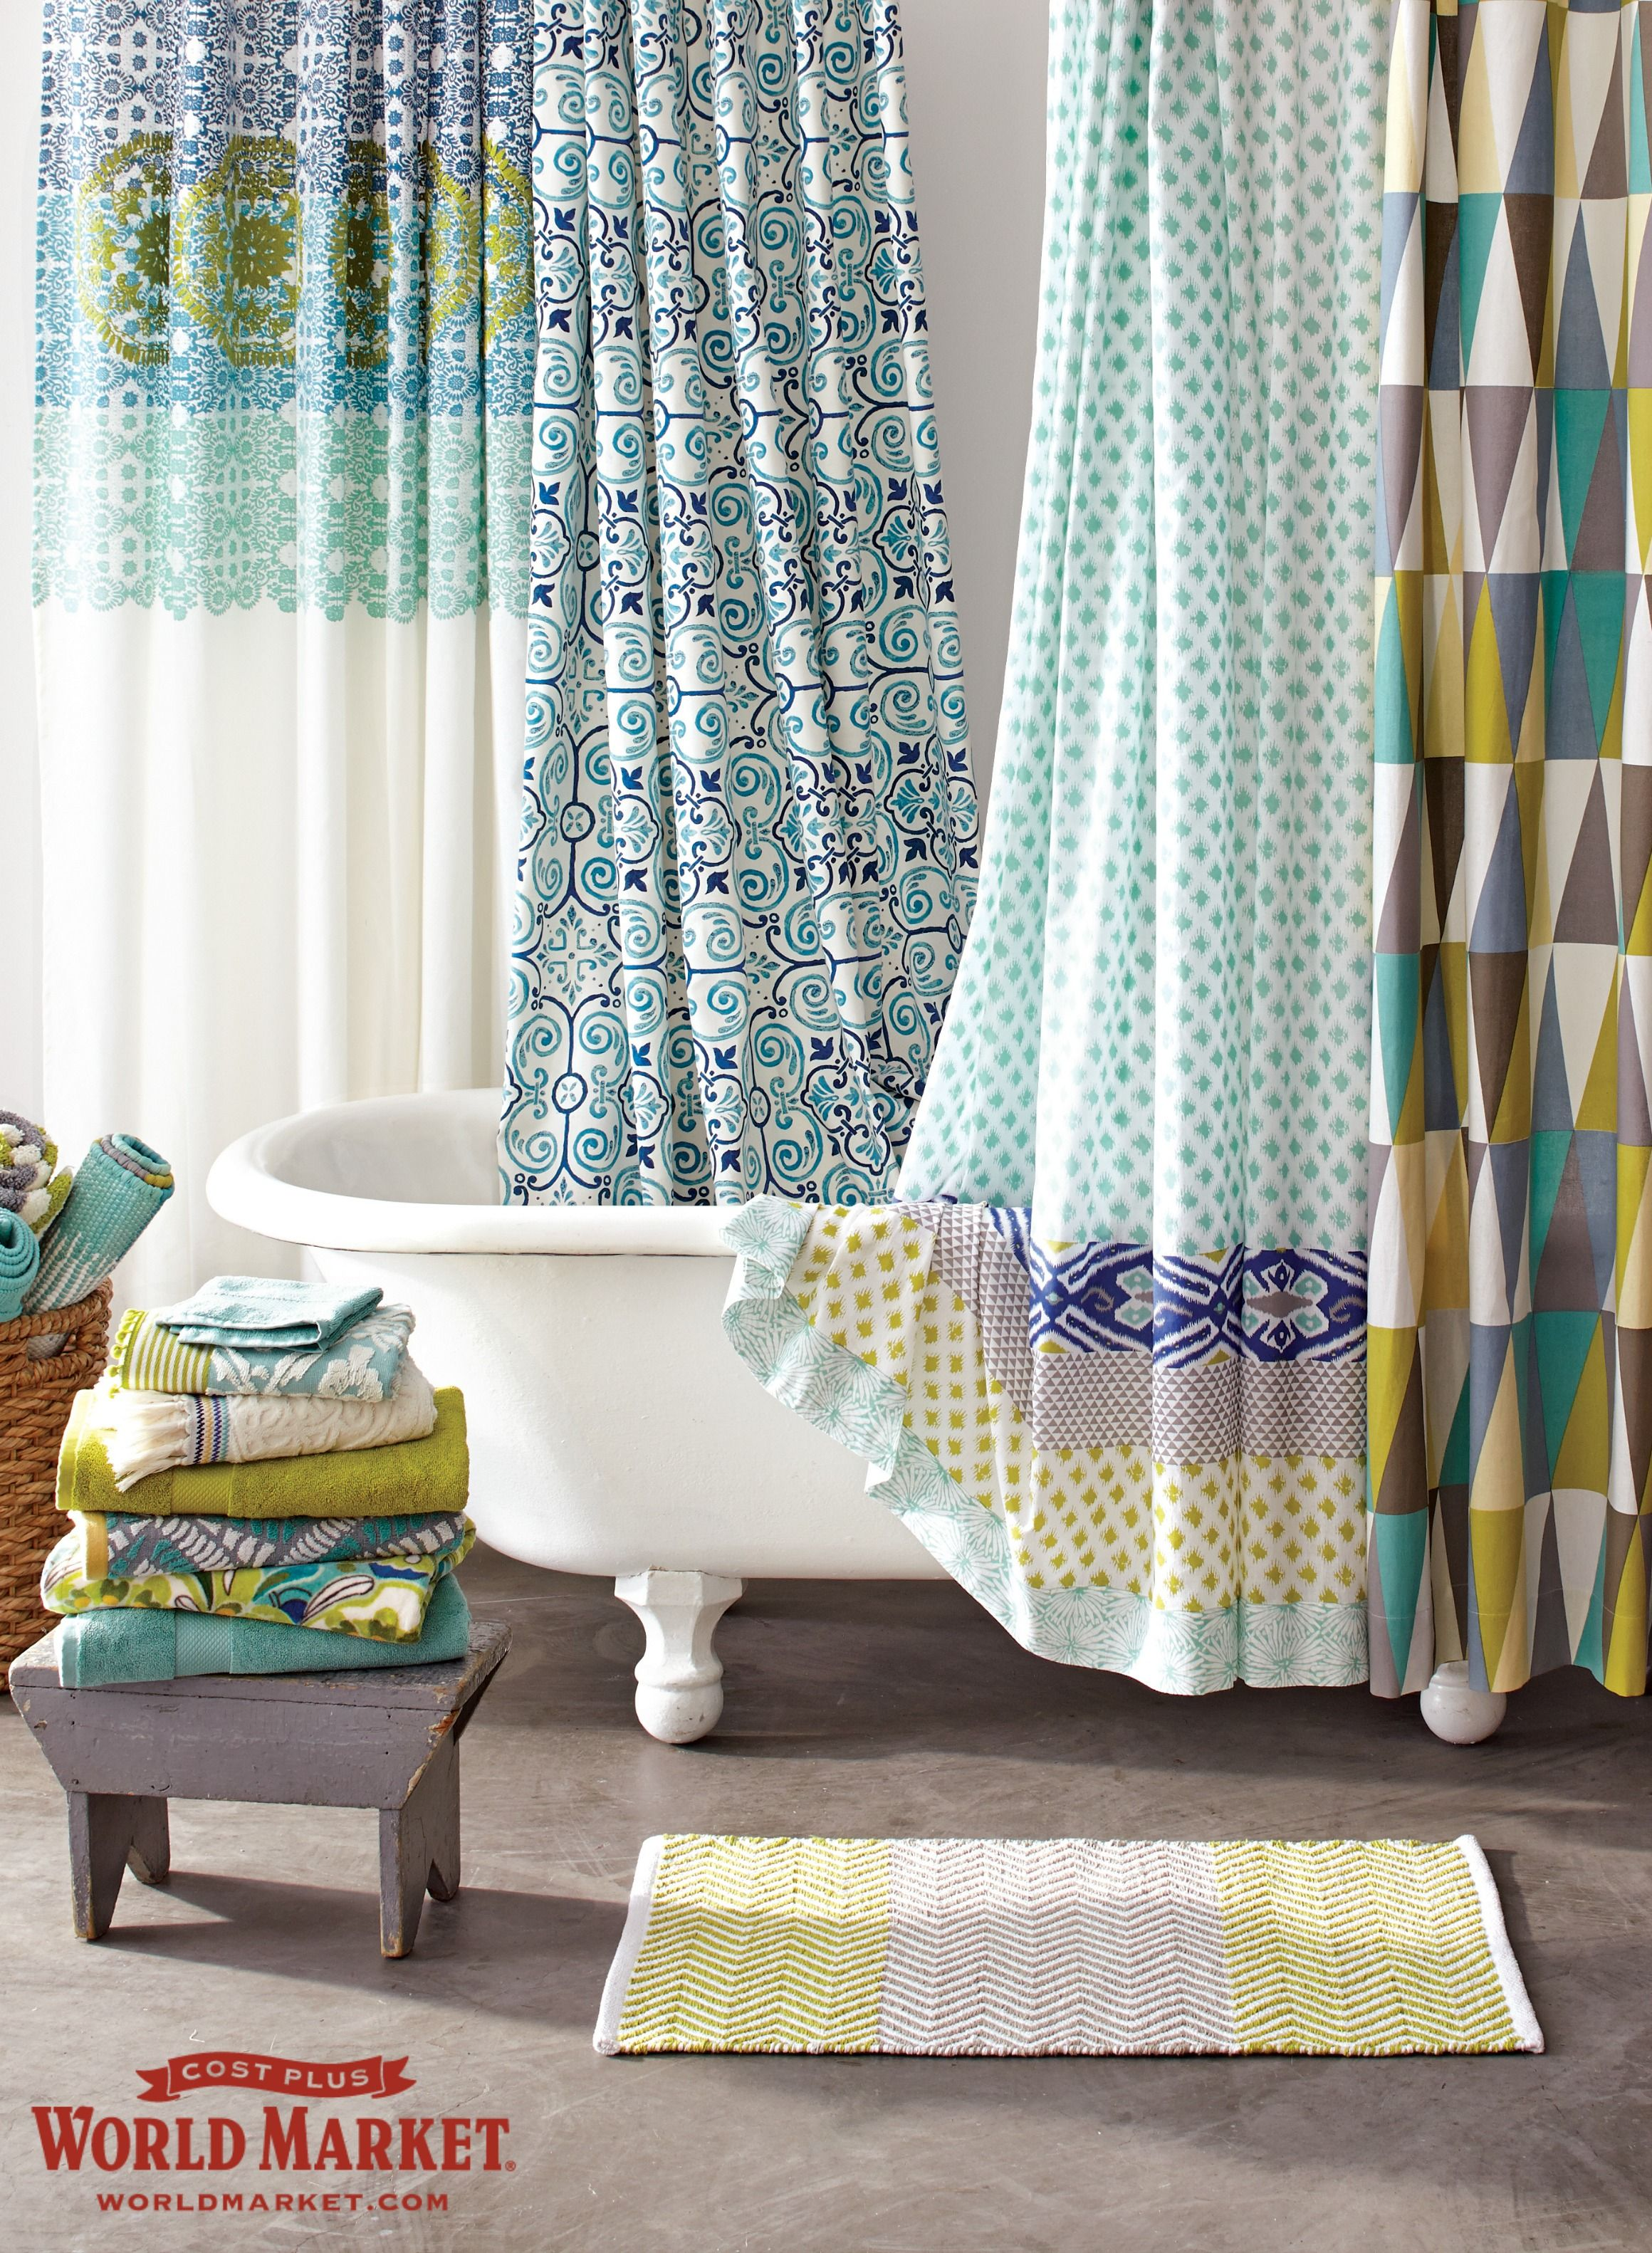 Funky shower curtains - Andana Medallion Shower Curtain